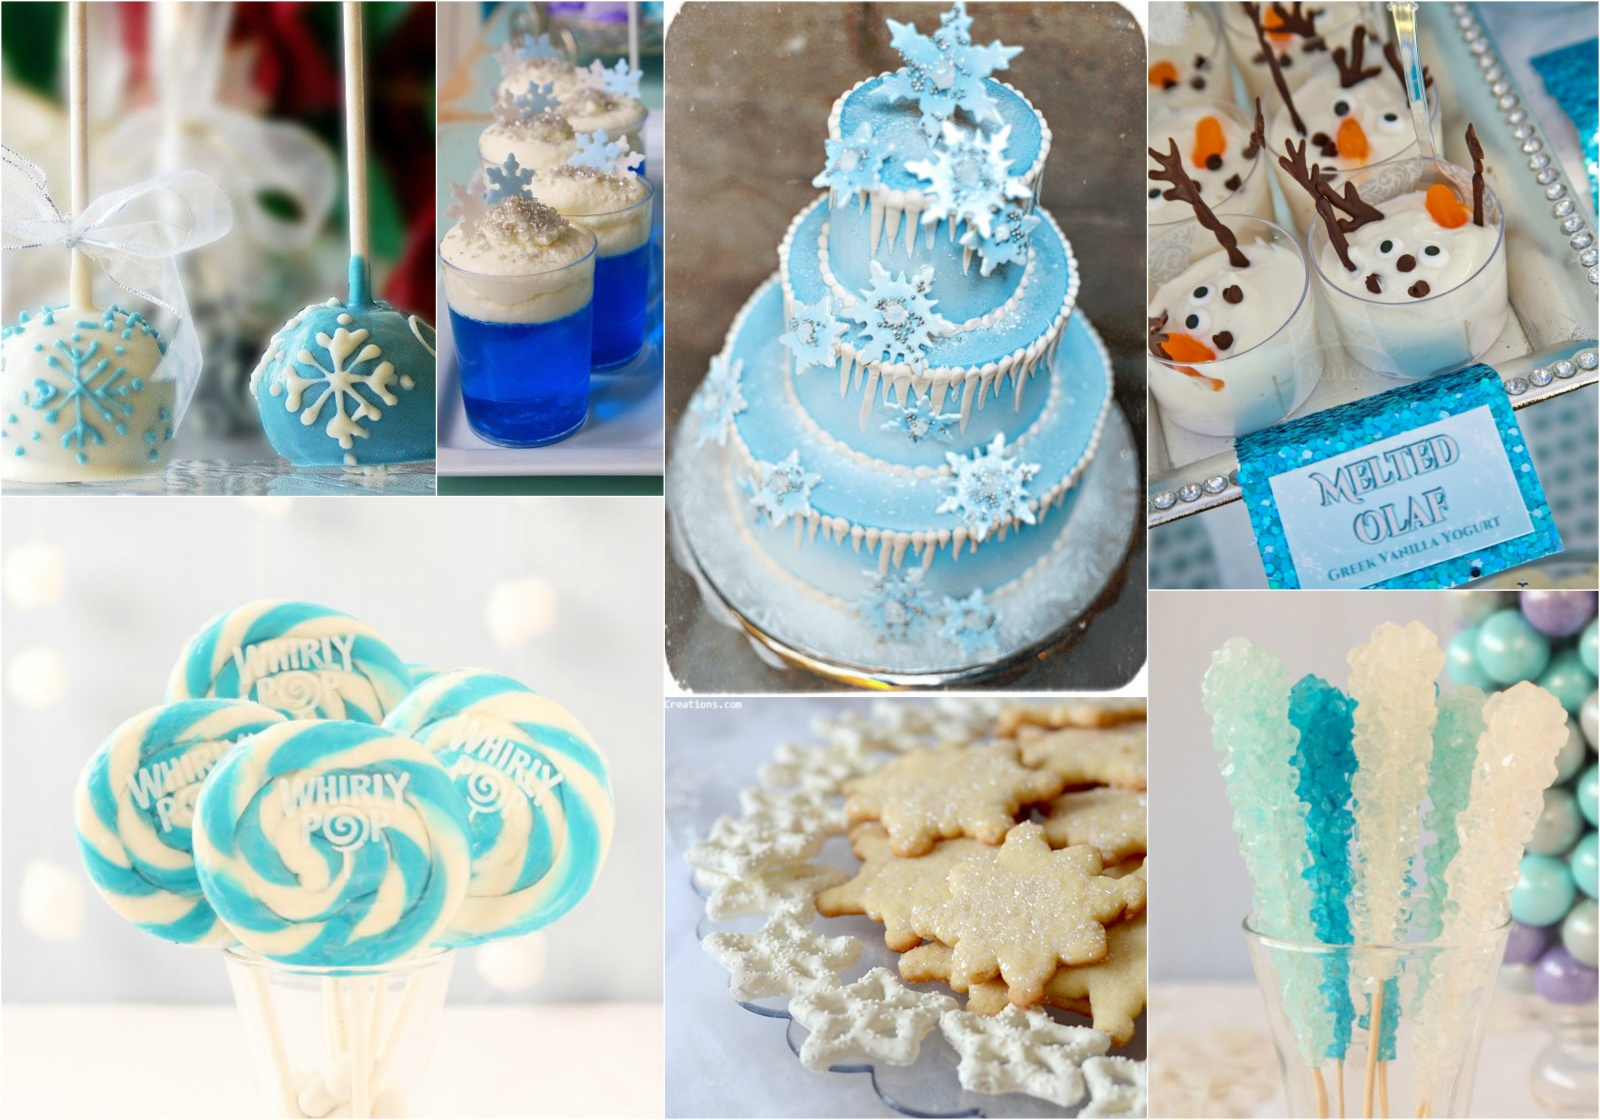 Creative ideas for hosting a frozen birthday party theme beau coup blog - S party theme decorations ...